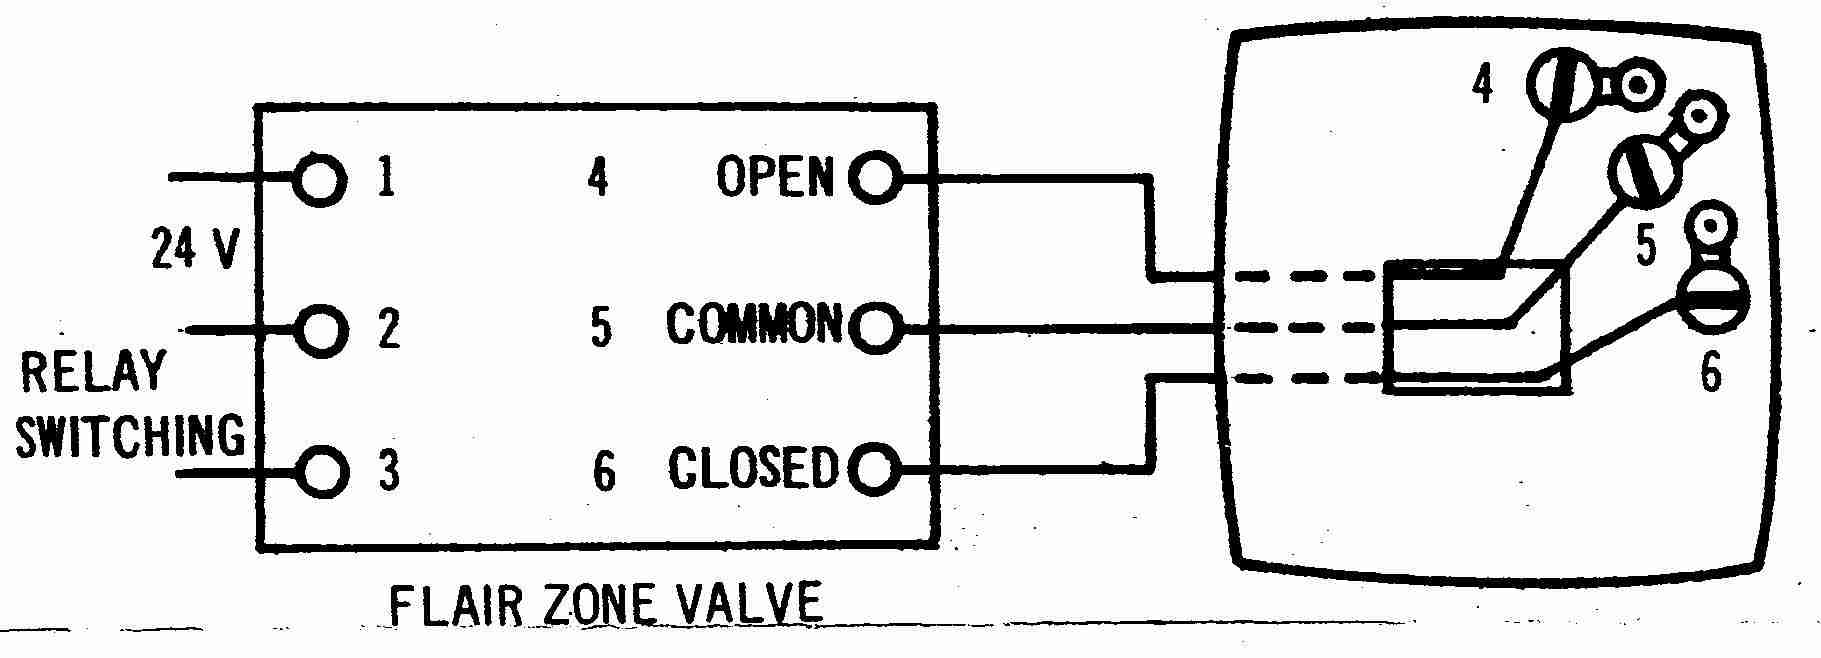 Flair3w_001_DJFc2 room thermostat wiring diagrams for hvac systems 5 pin 3 phase wiring diagram at reclaimingppi.co